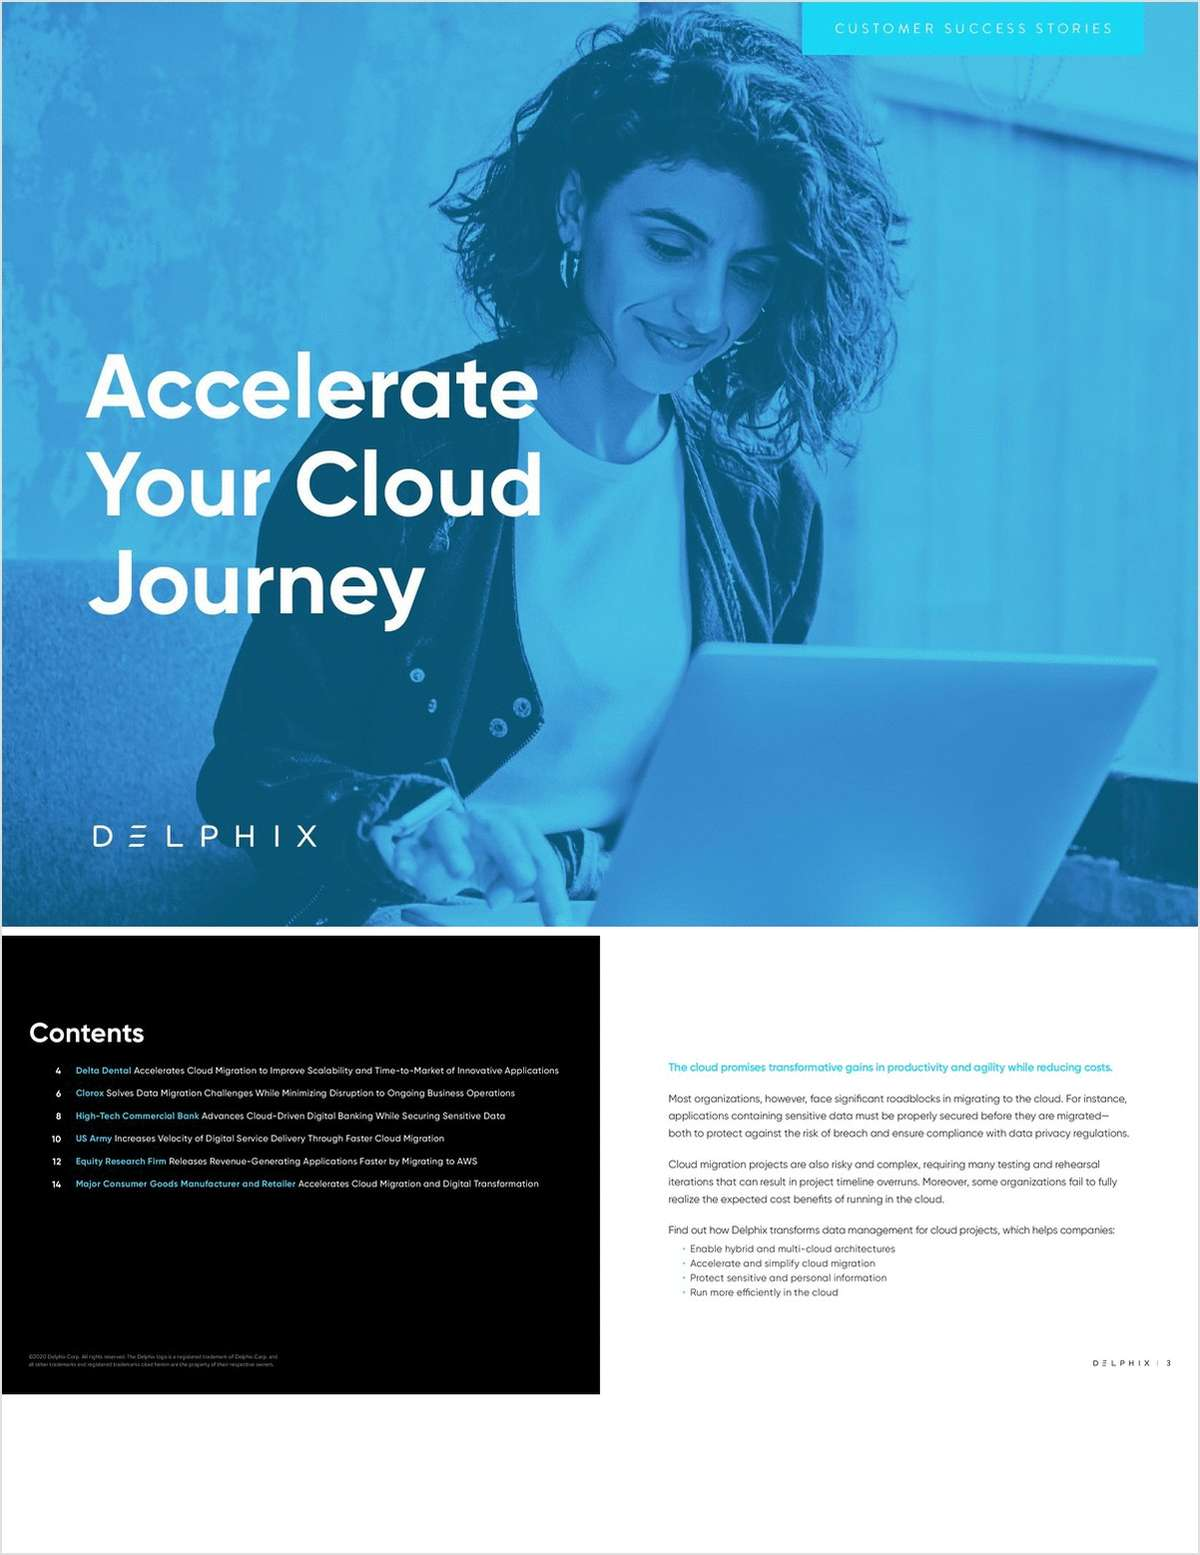 Accelerate Your Cloud Journey